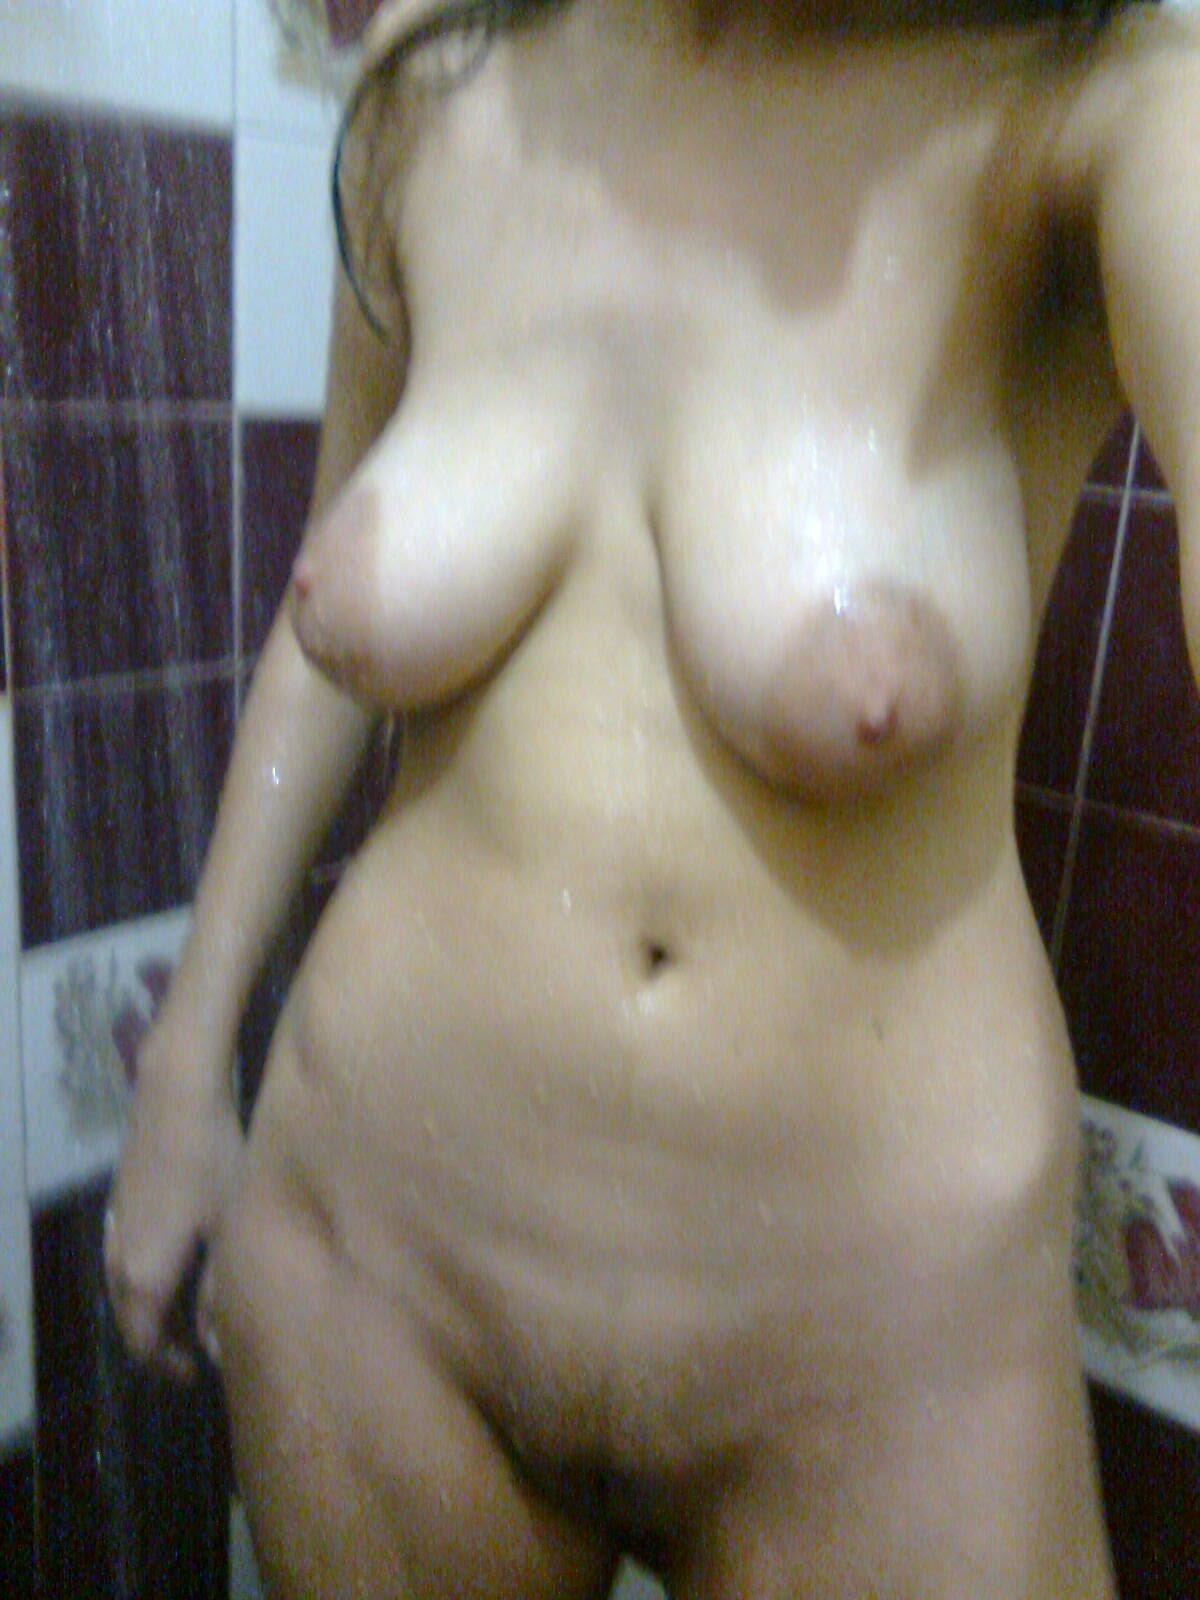 Beautiful Indian Girl Playing around Nude in Shower - 7